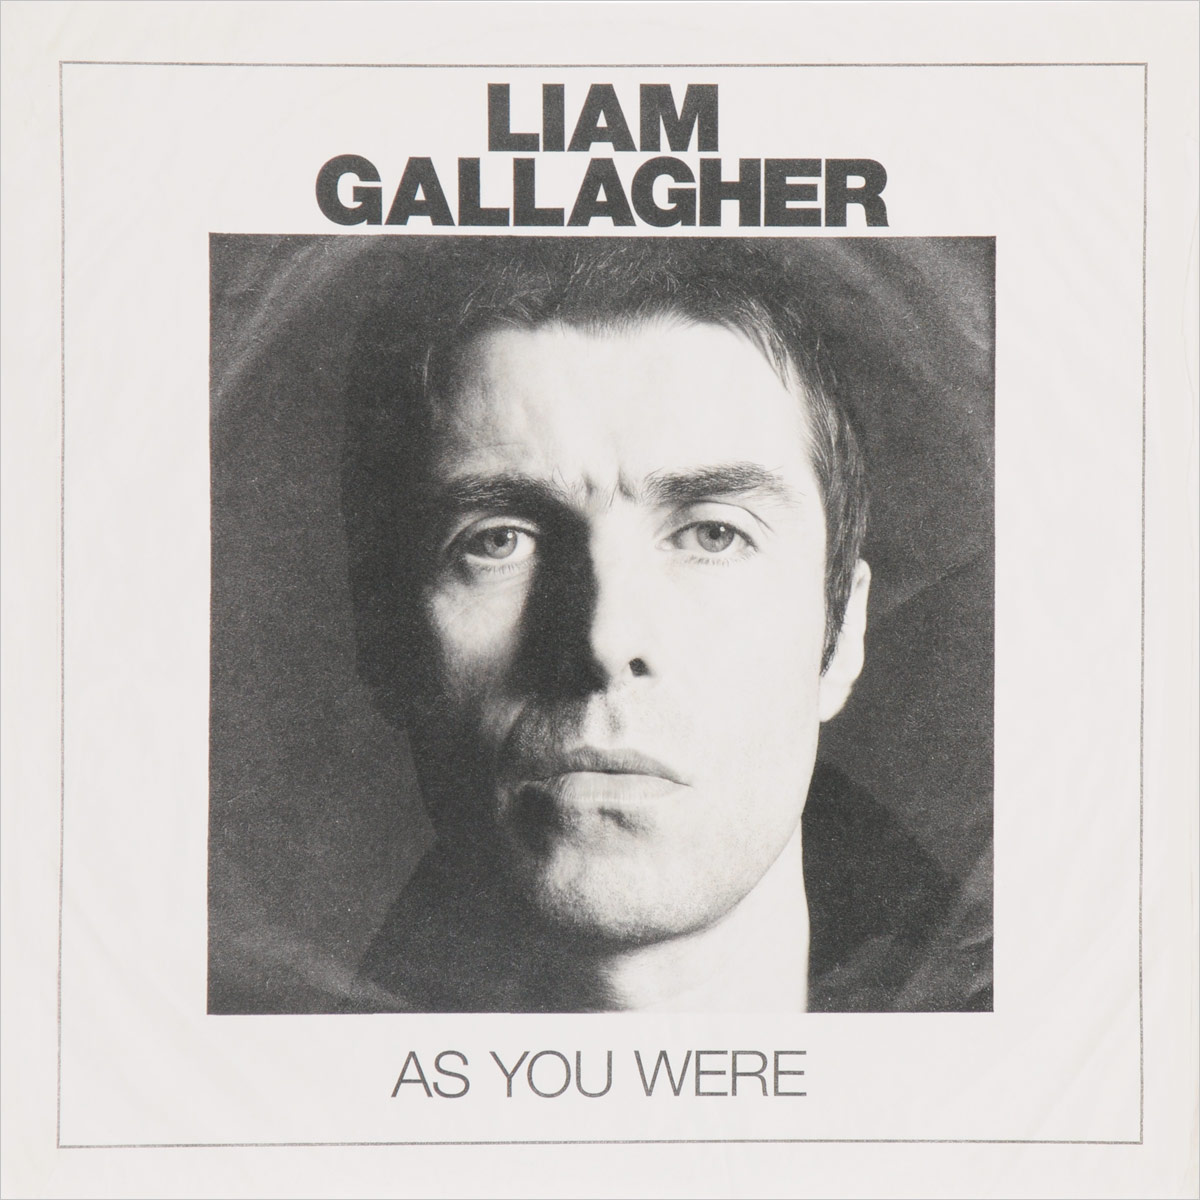 Лиам Галлахер Liam Gallagher. As You Were (LP) liam gallagher liam gallagher as you were picture